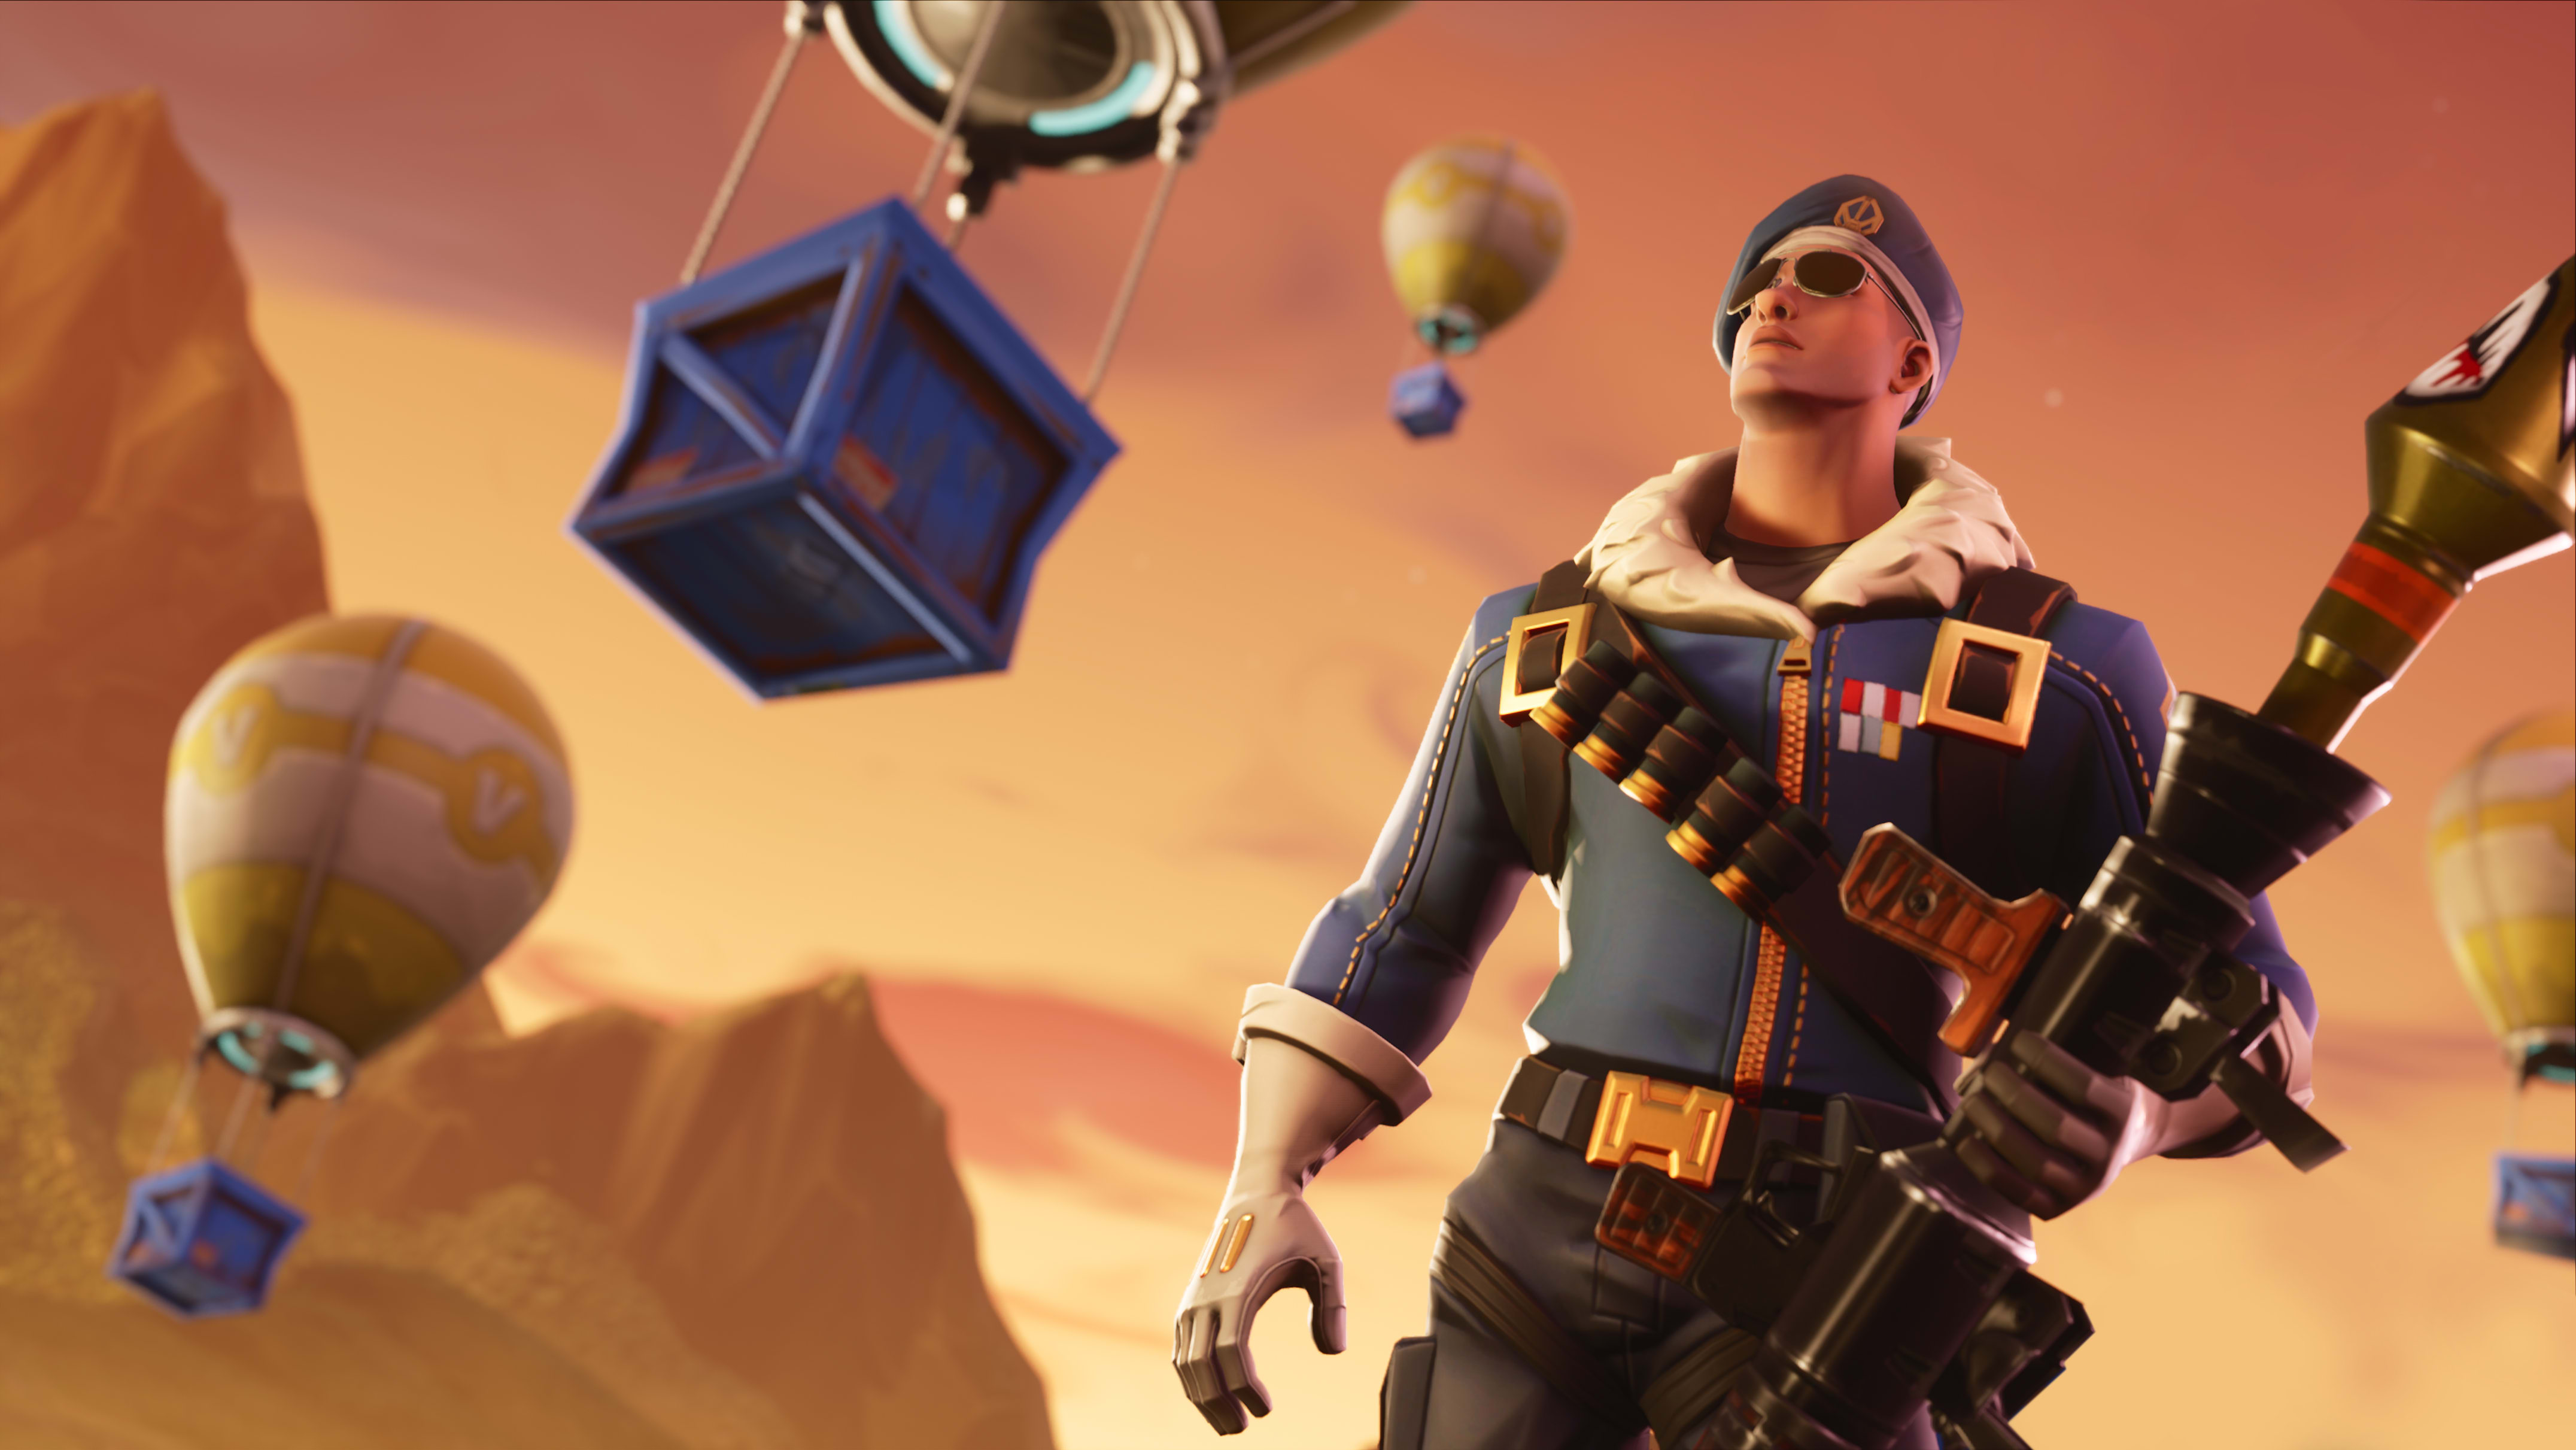 ps4 pro 1tb with fortnite royale bomber outfit 500 v bucks - fortnite credits ps4